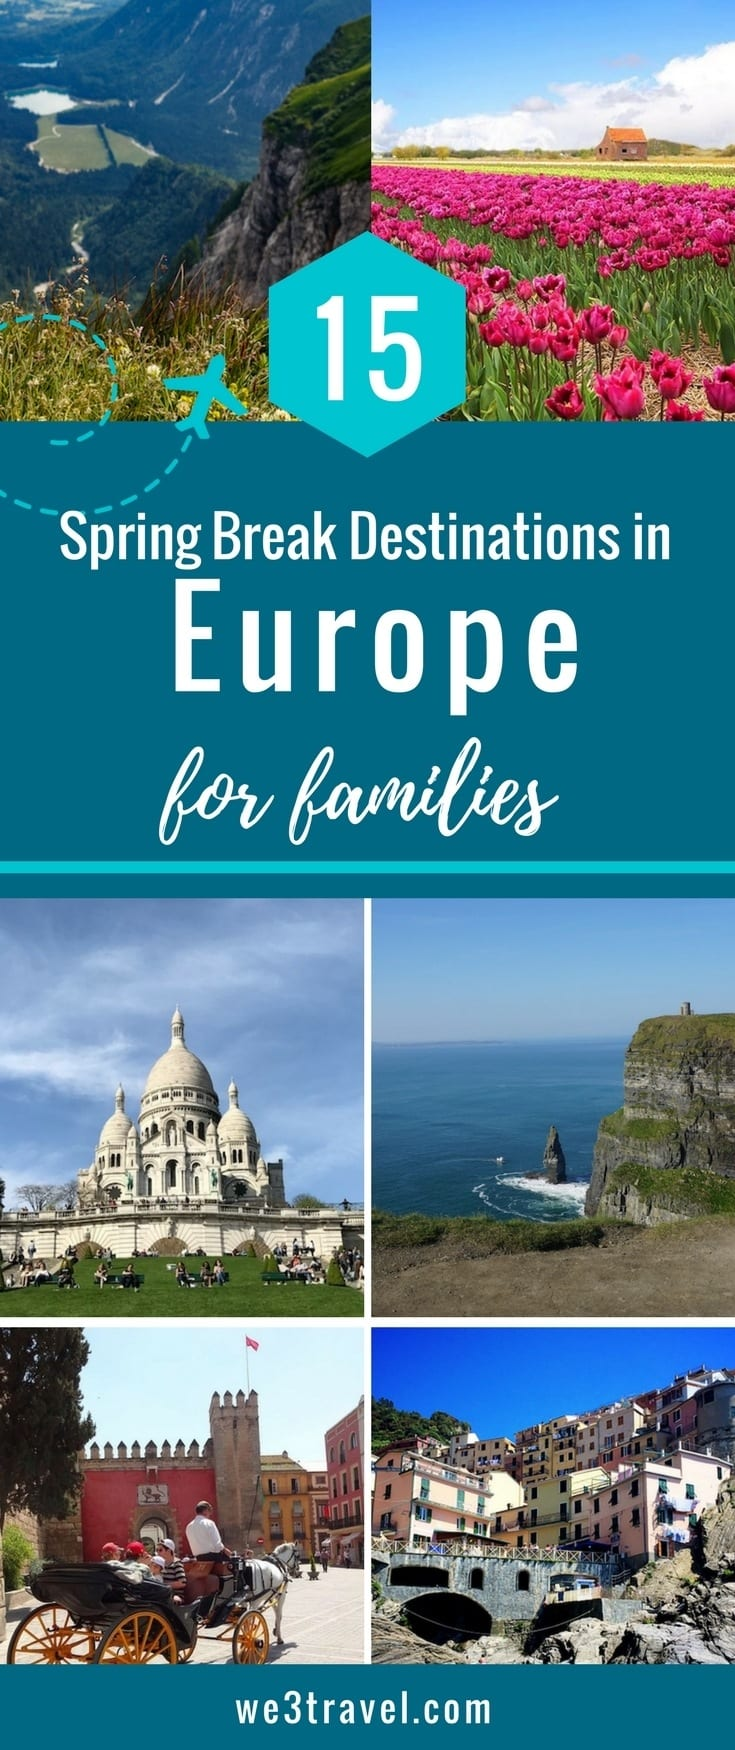 European vacation ideas for spring break destinations for families.